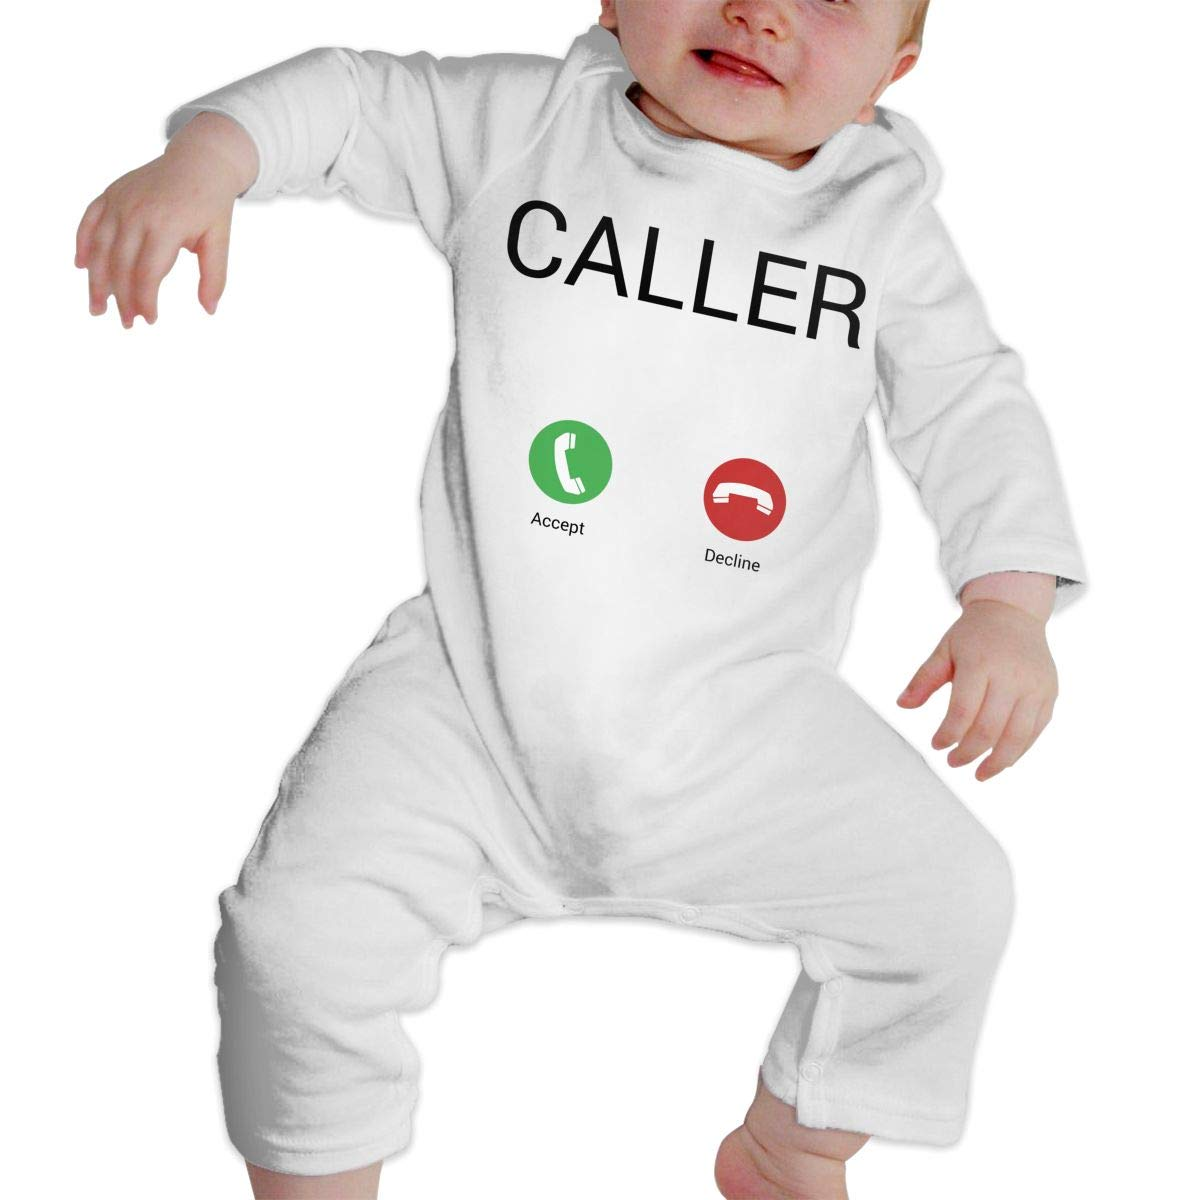 Unisex Baby Round Neck Long Sleeve Pure Color Romper Incoming Phone Call Interface Jumpsuit